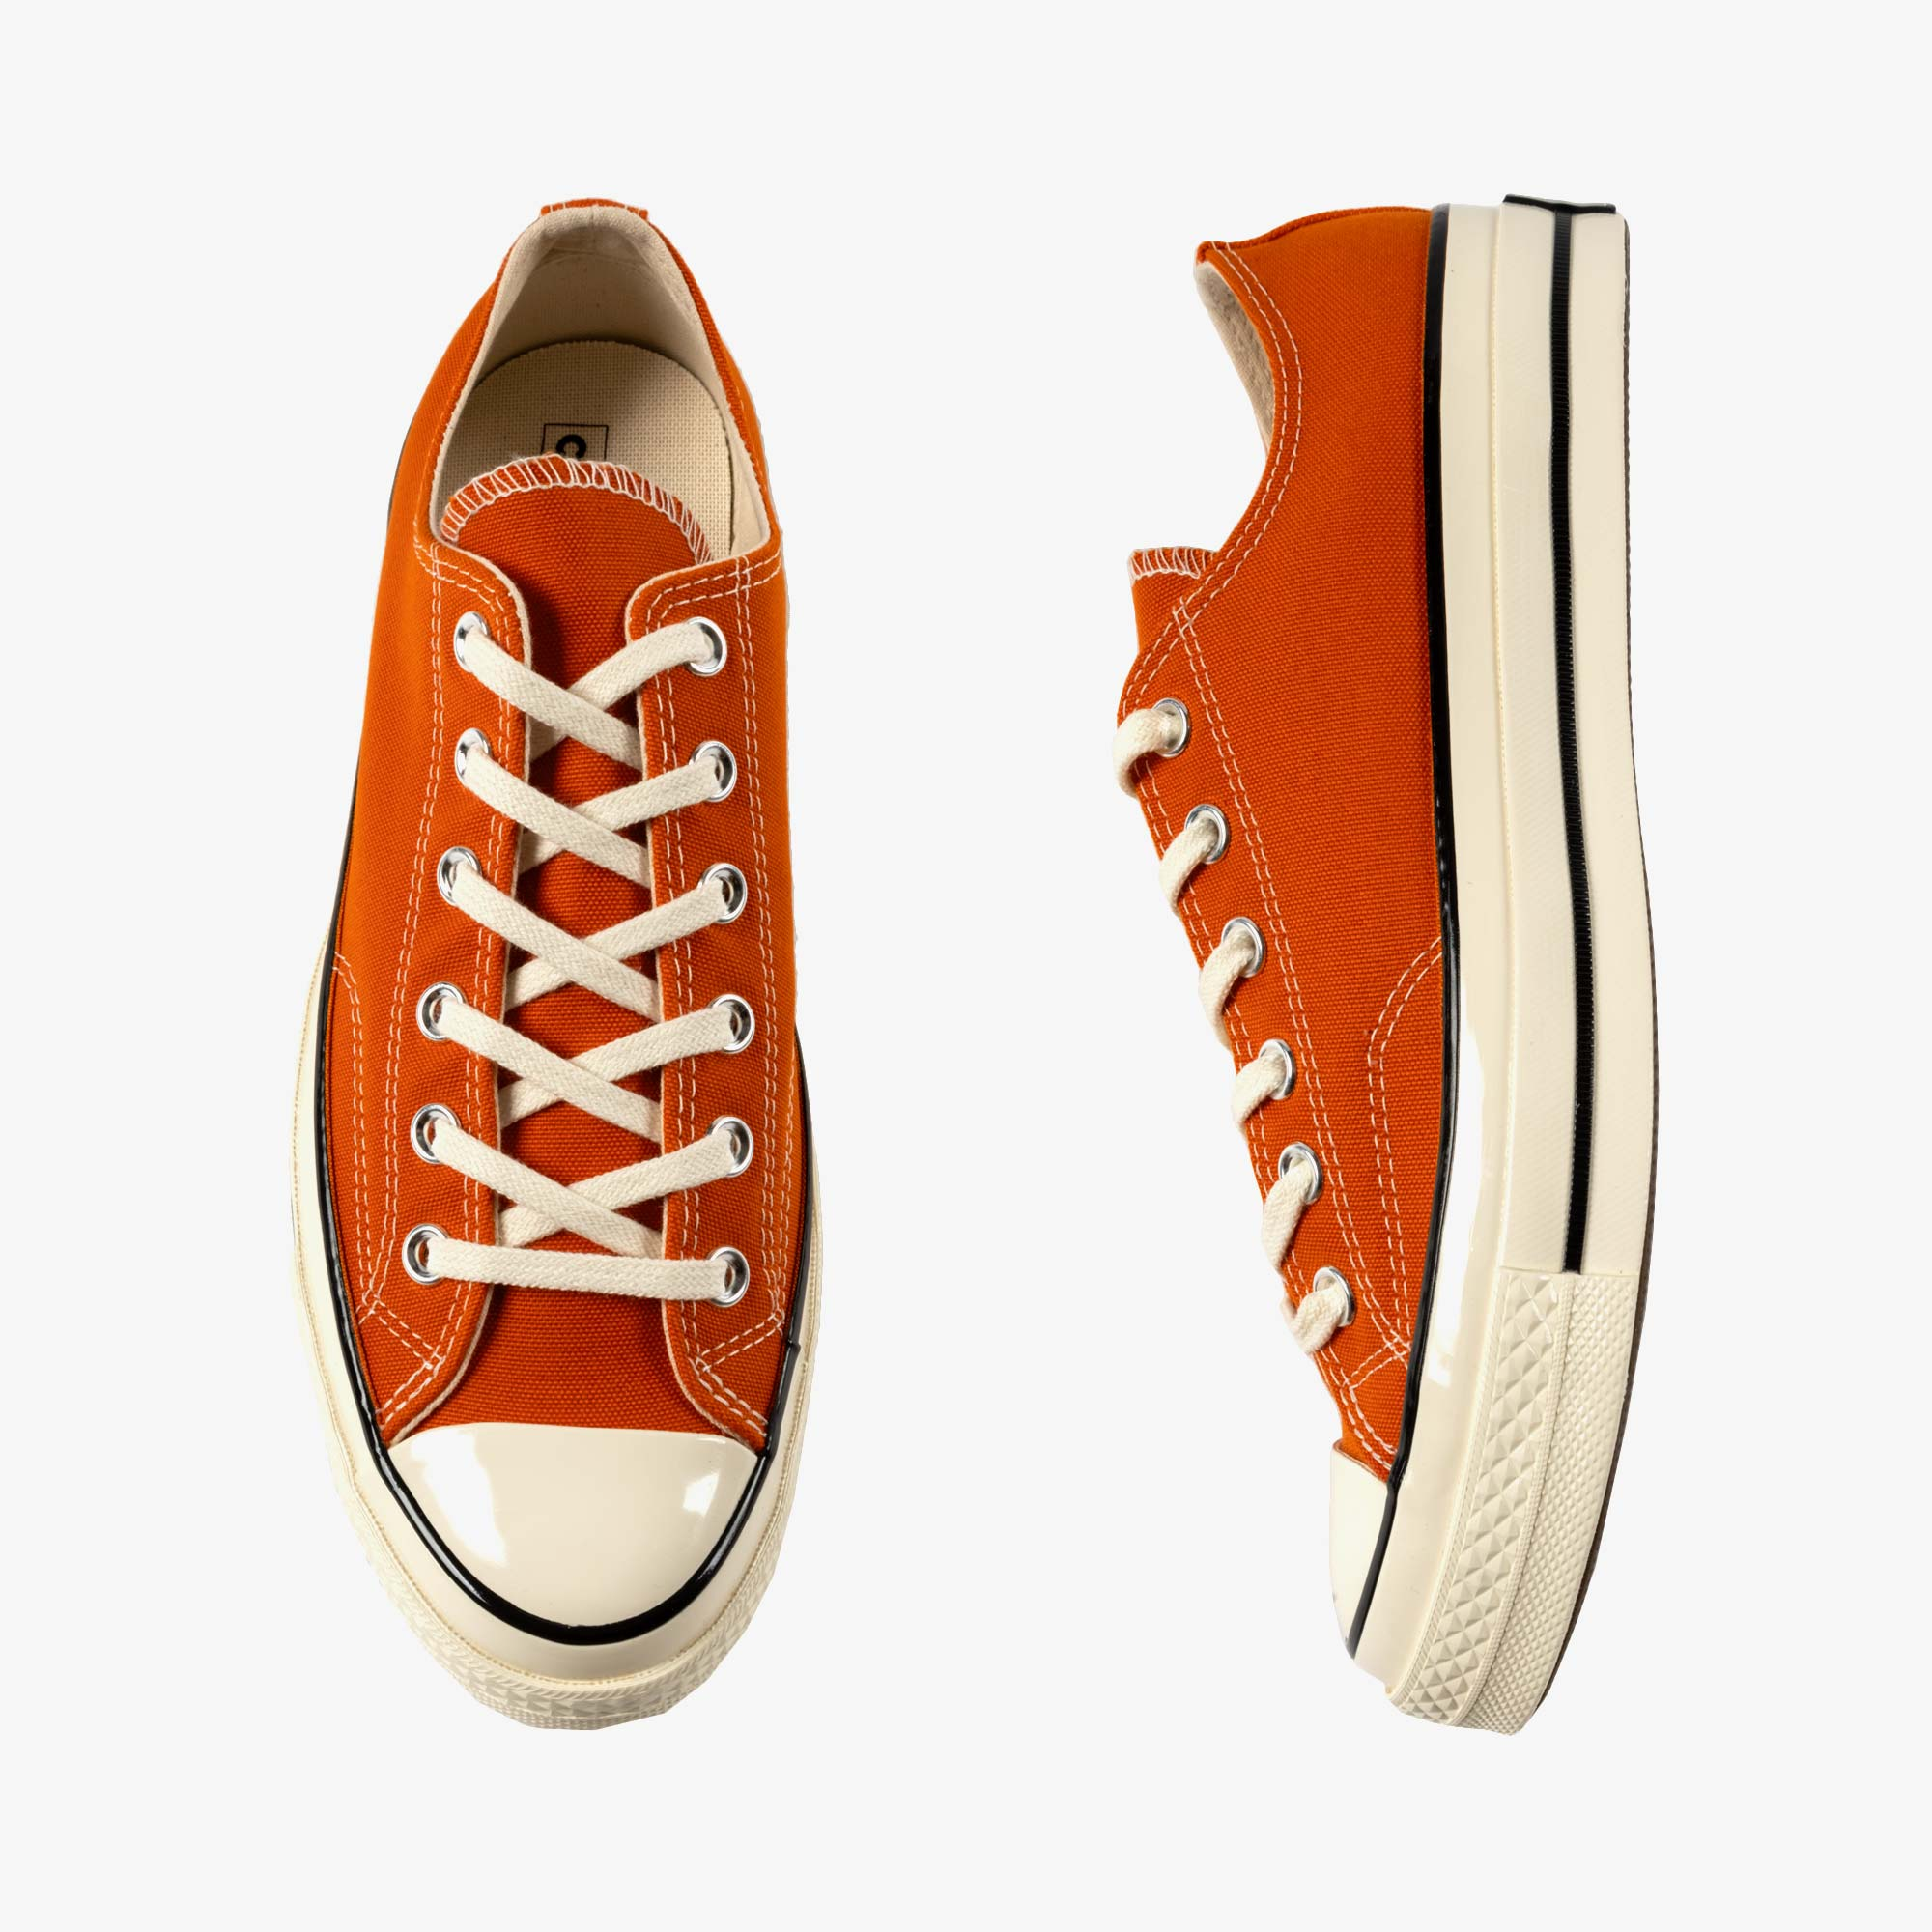 Converse Chuck Taylor Low 70 Recycled Canvas - Fire Pit 1